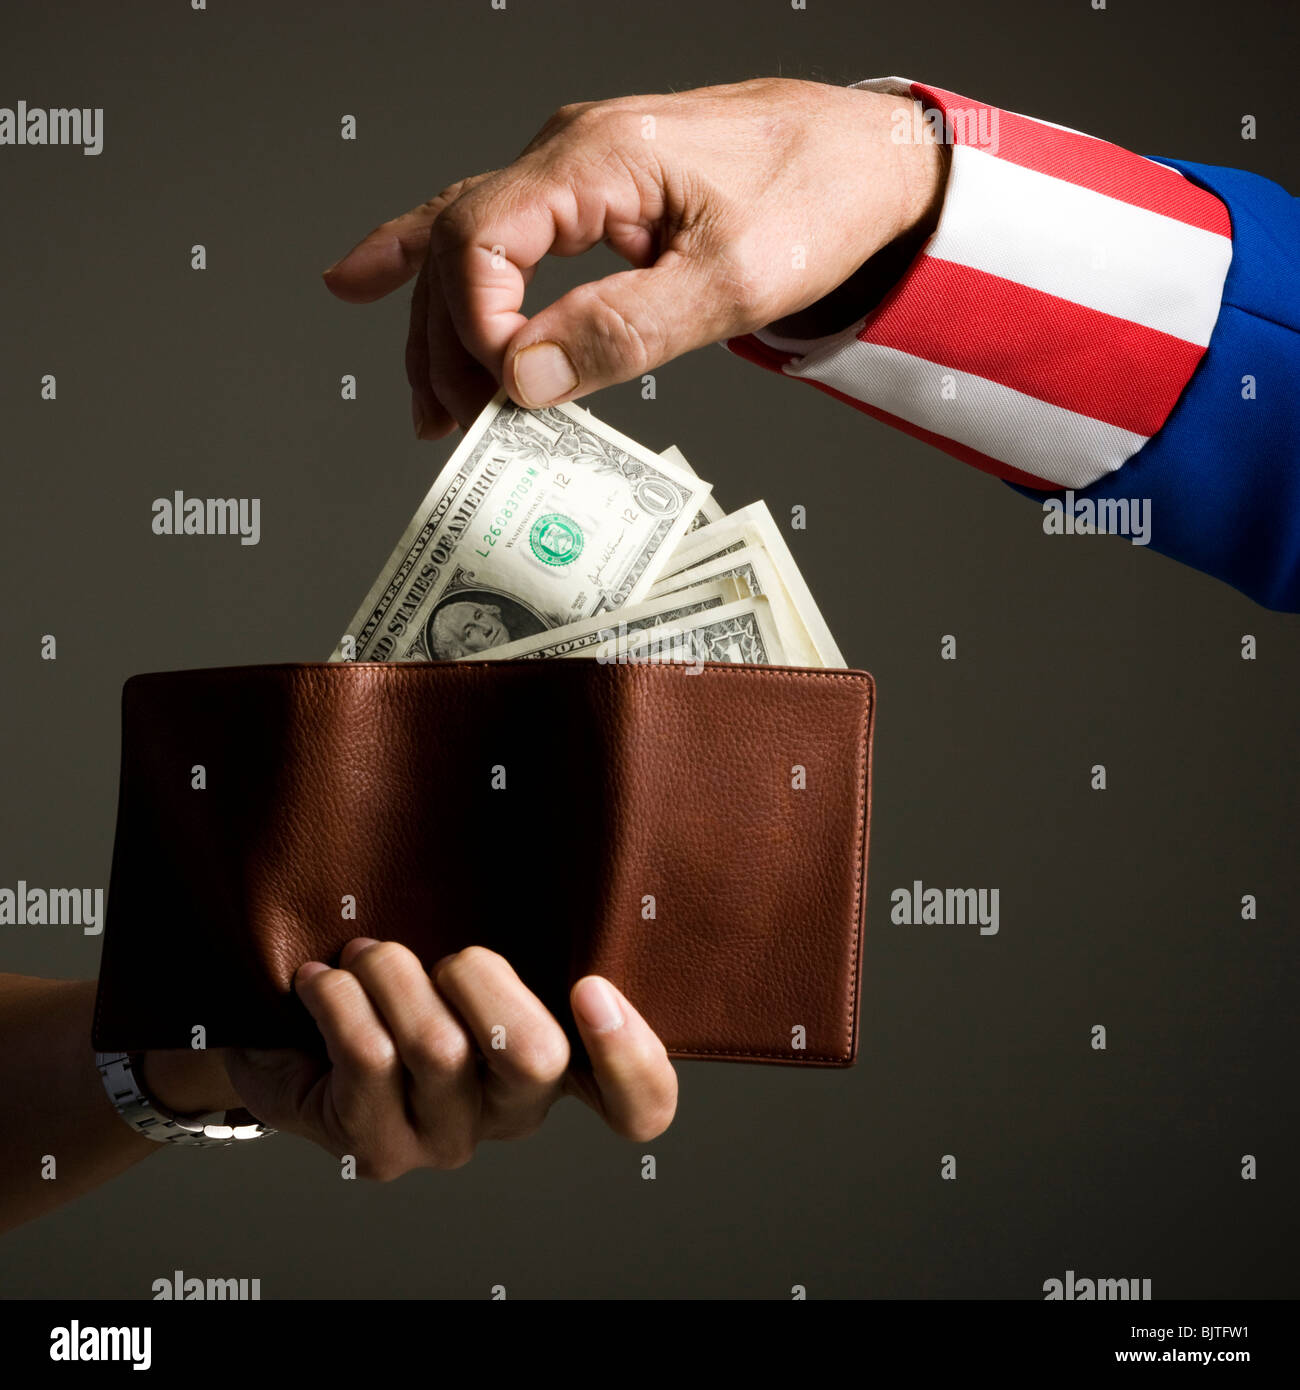 Man in Uncle Sam's costume taking money from wallet, studio shot - Stock Image